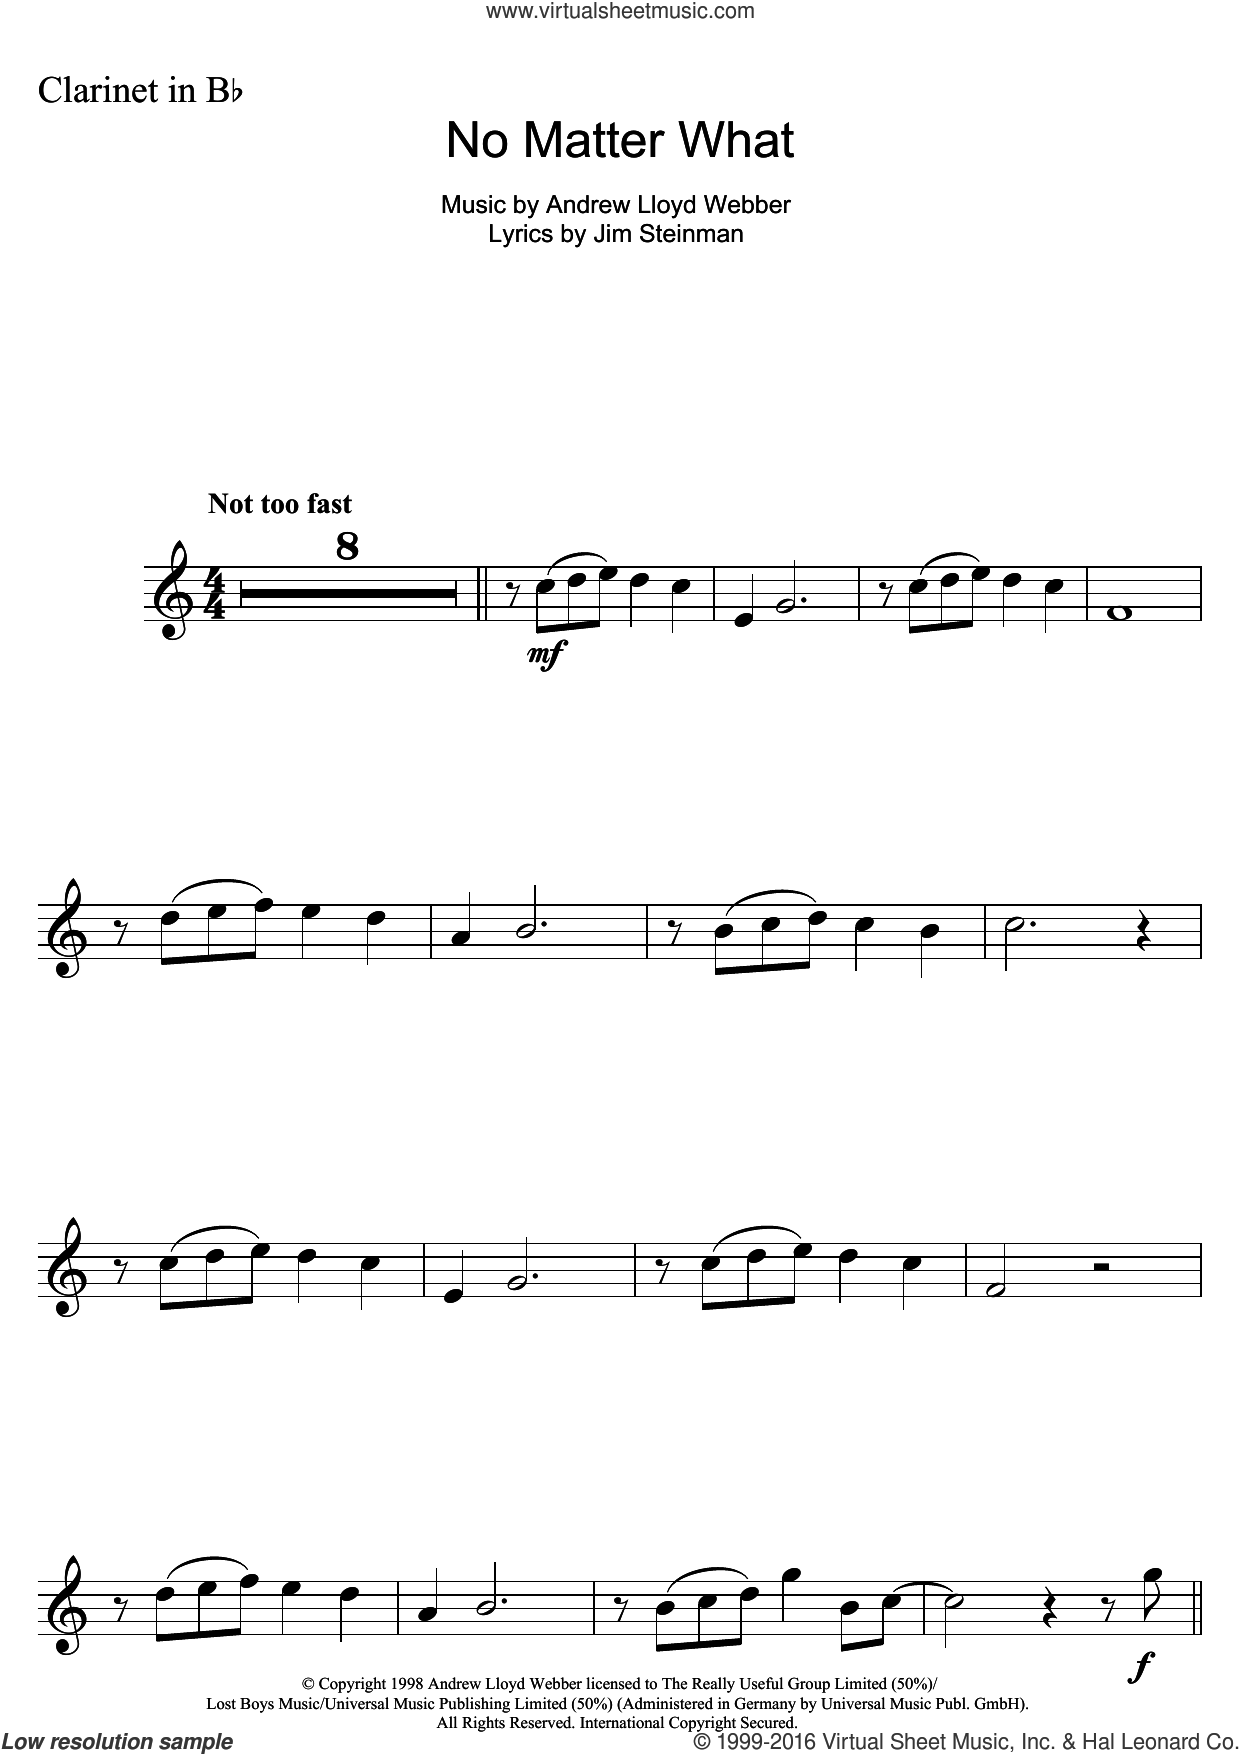 No Matter What (from Whistle Down The Wind) sheet music for clarinet solo by Andrew Lloyd Webber, Boyzone and Jim Steinman, intermediate skill level